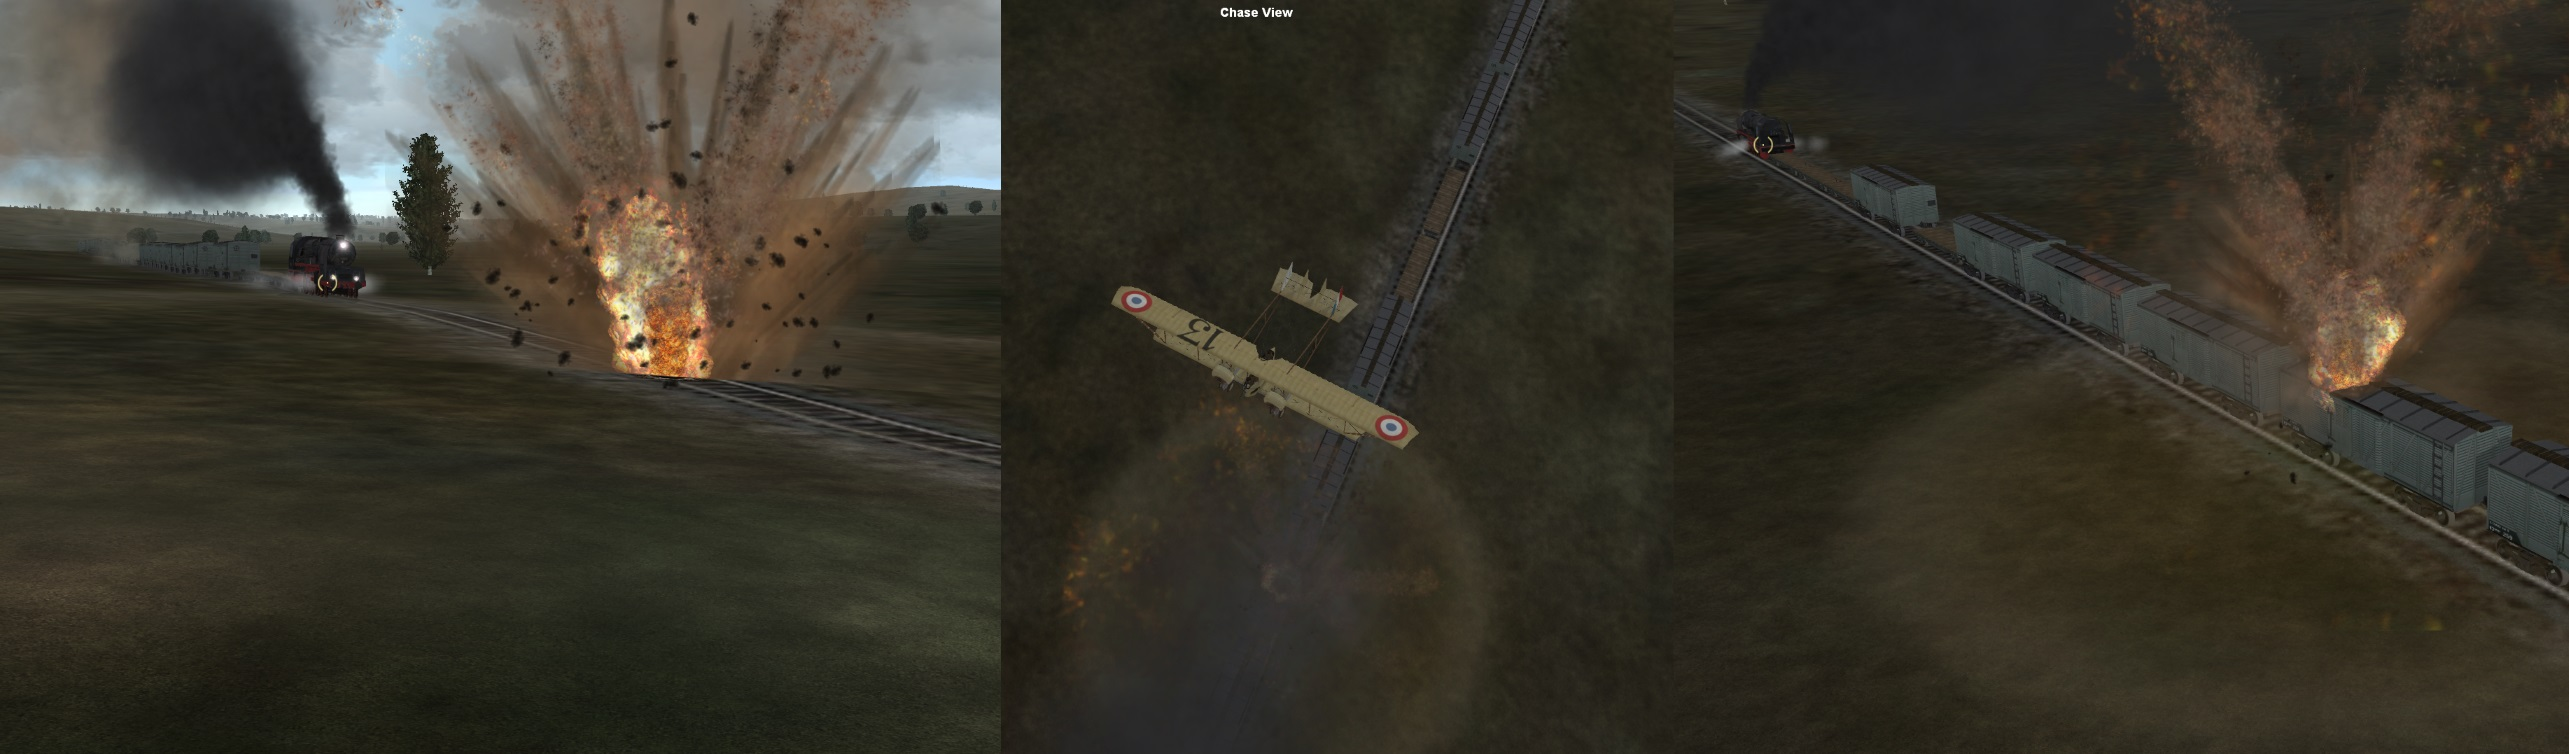 Bombing a Locomotive.jpg